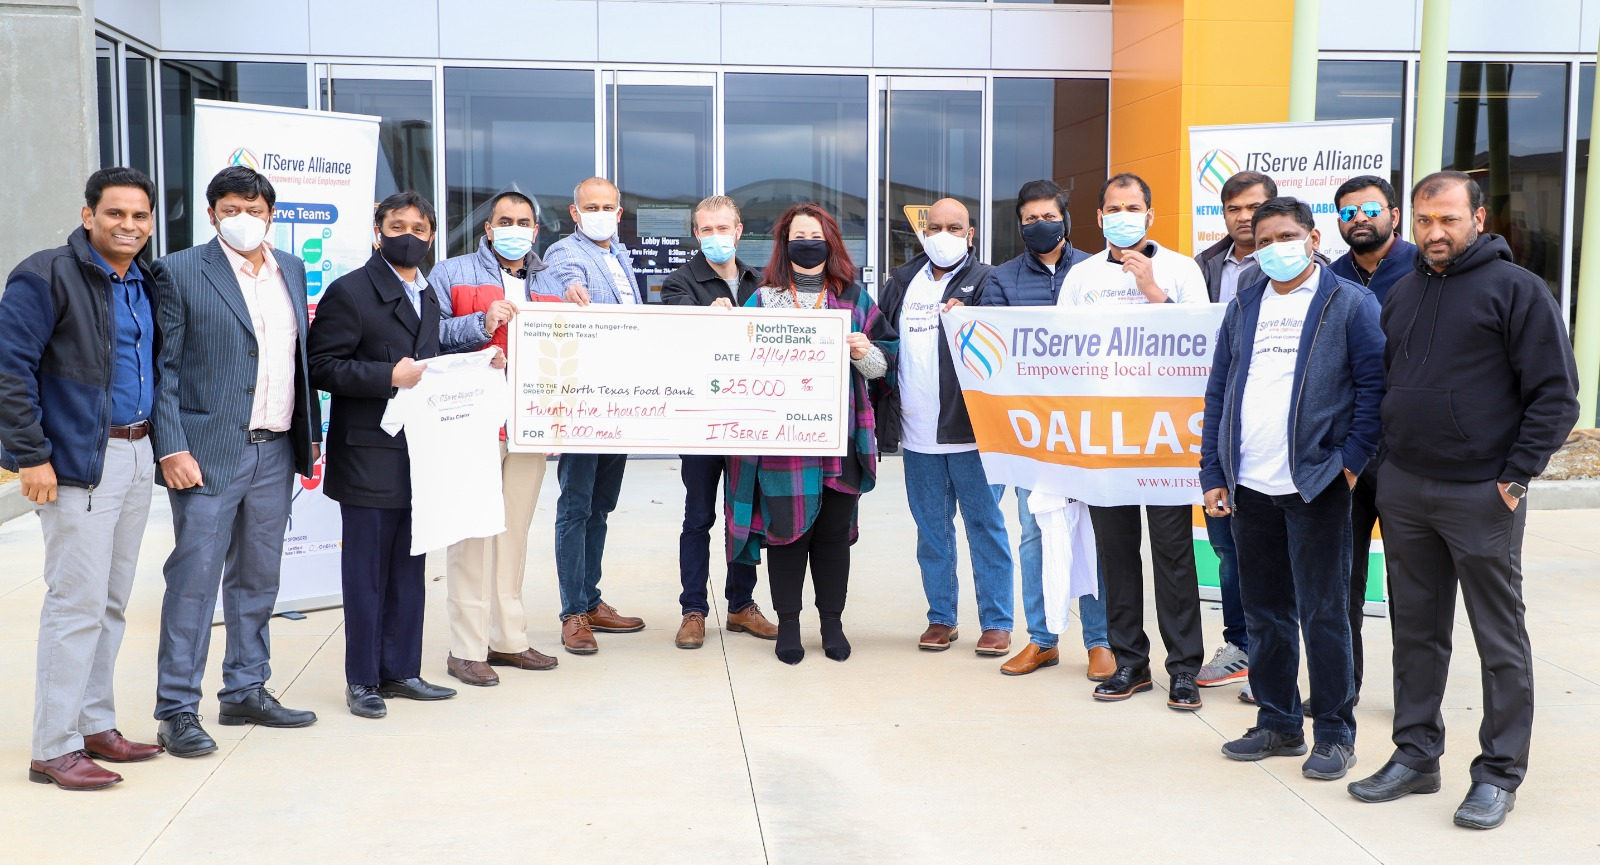 Donated $45,708 to the North Texas Food Bank in the pandemic year of 2020